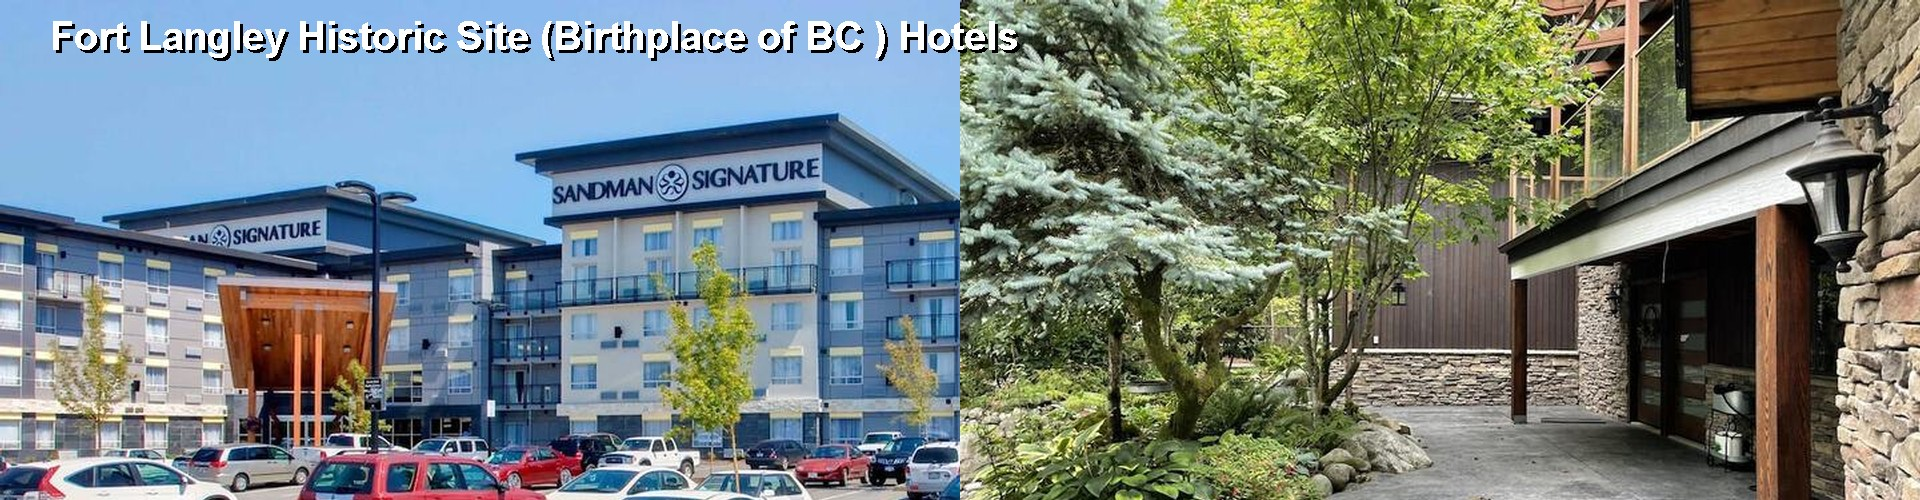 5 Best Hotels near Fort Langley Historic Site (Birthplace of BC )